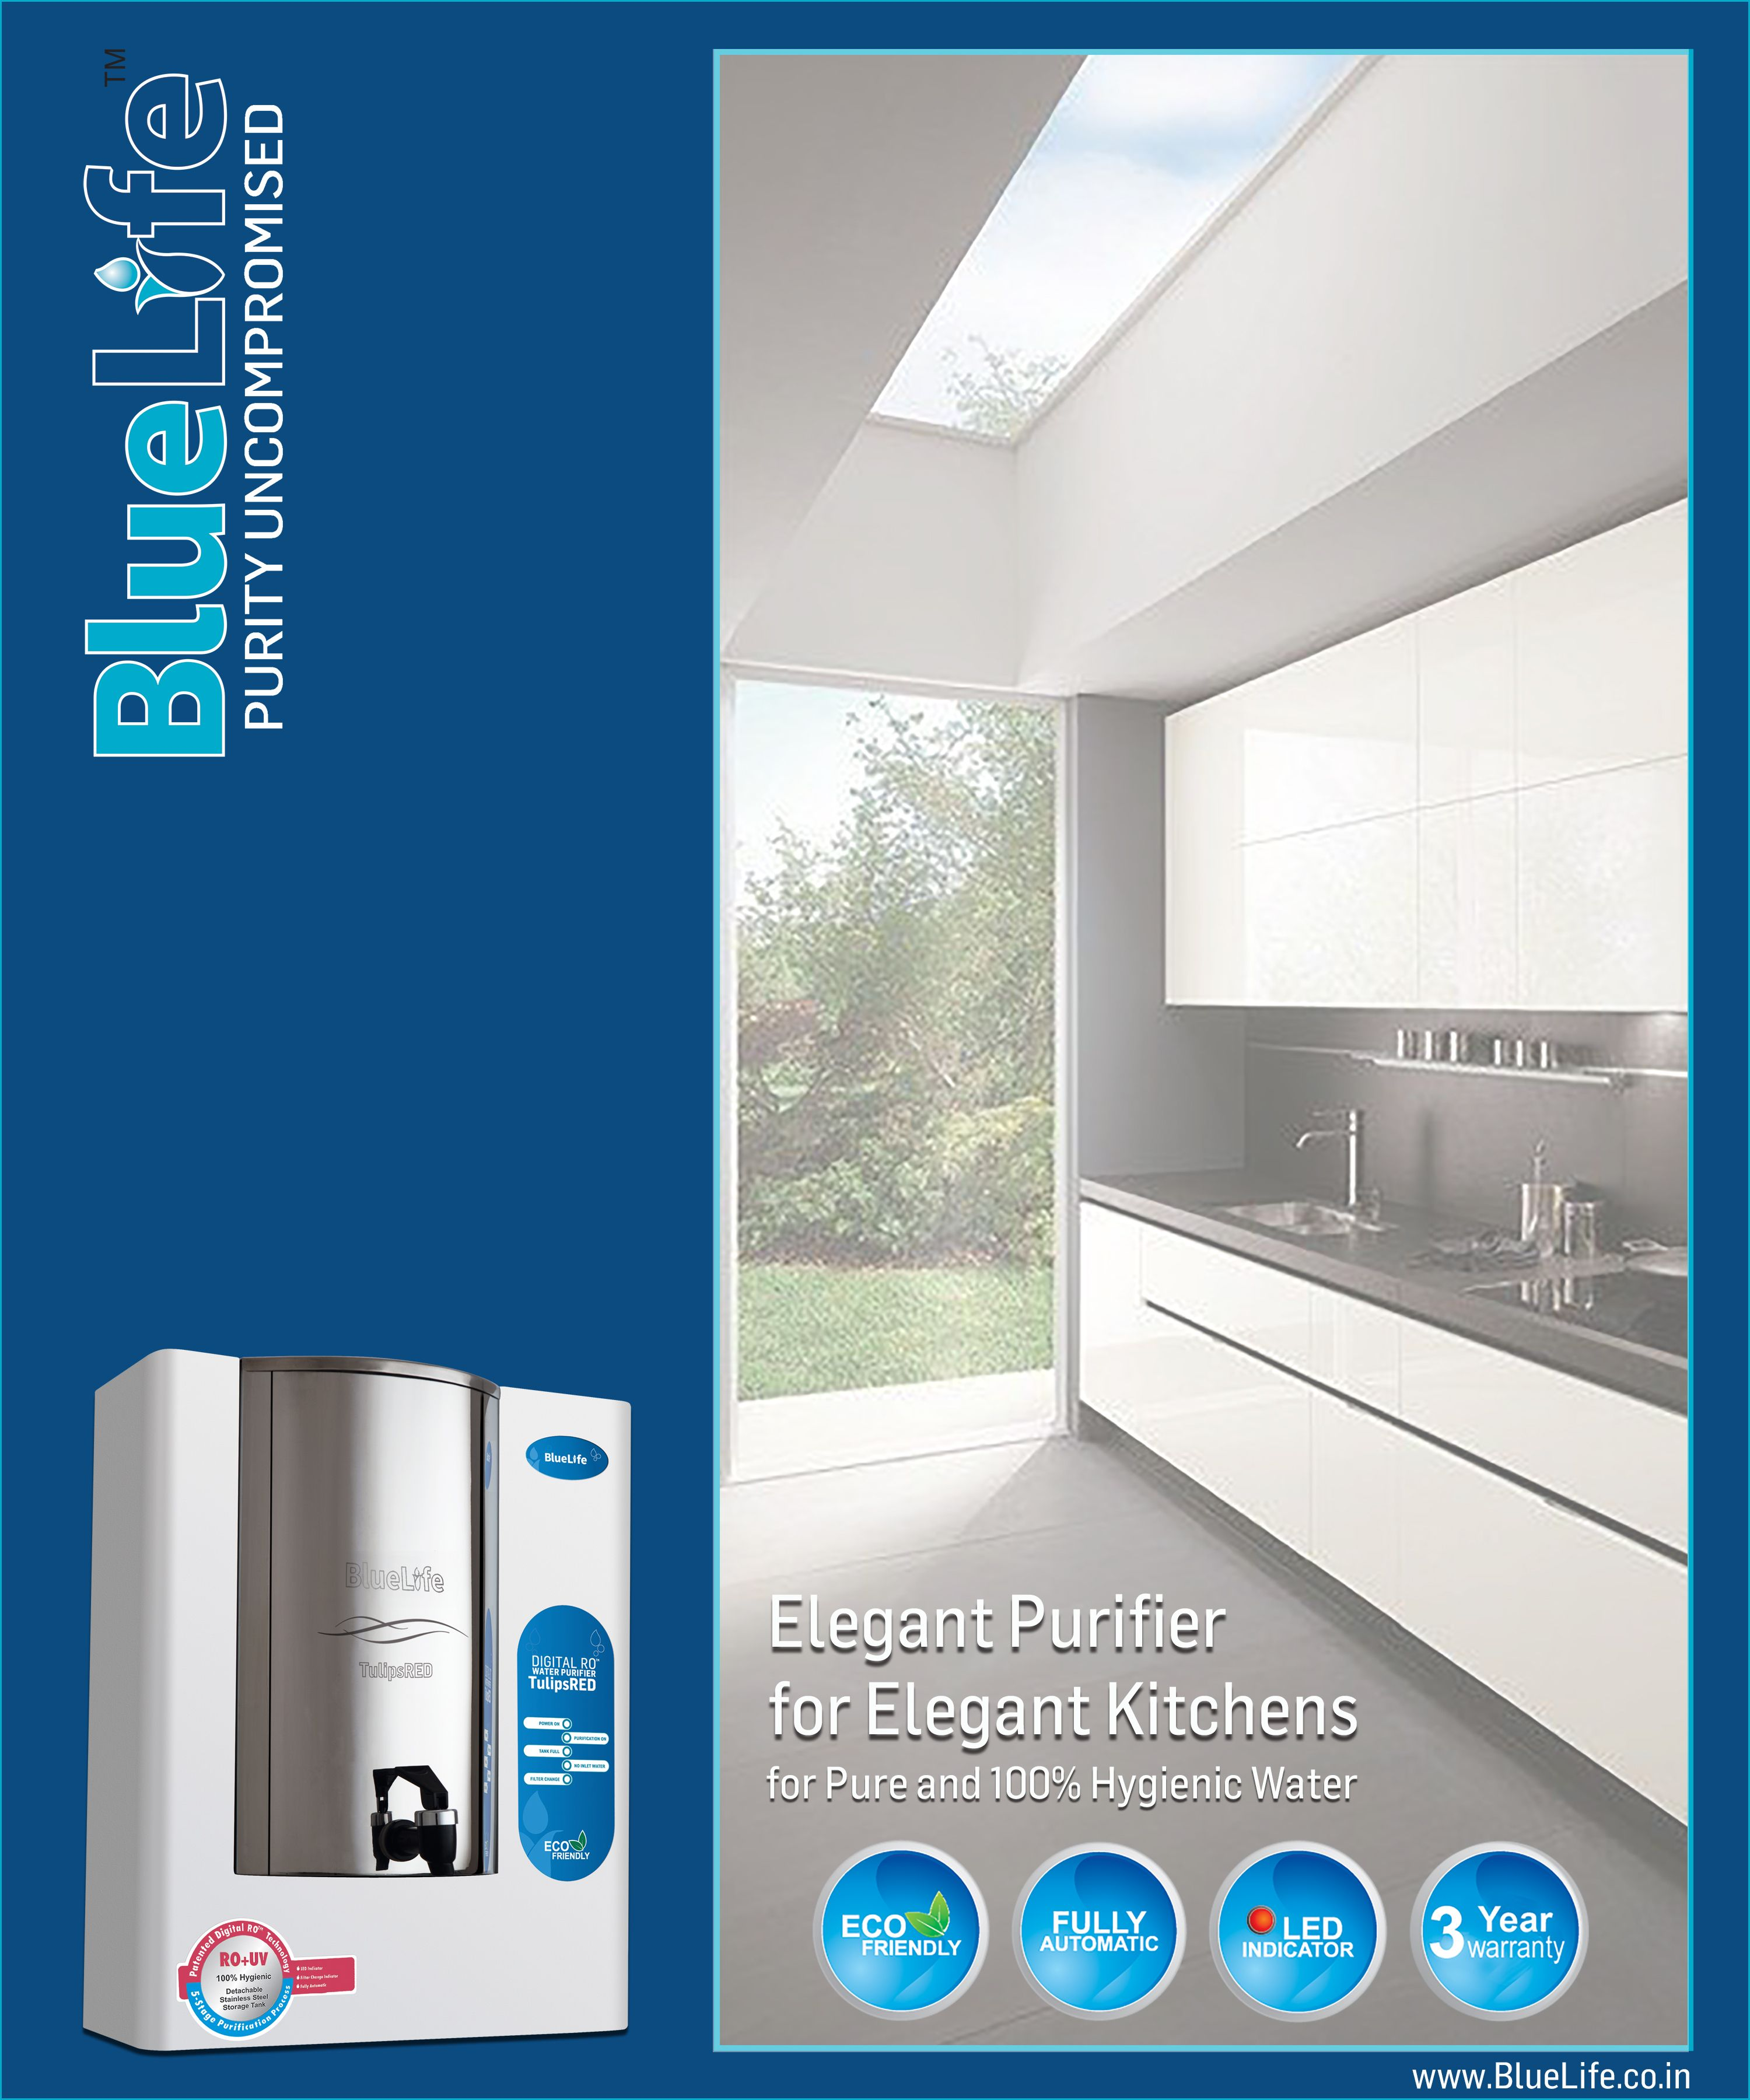 BlueLife™ Premium Range of Residential Water Purification